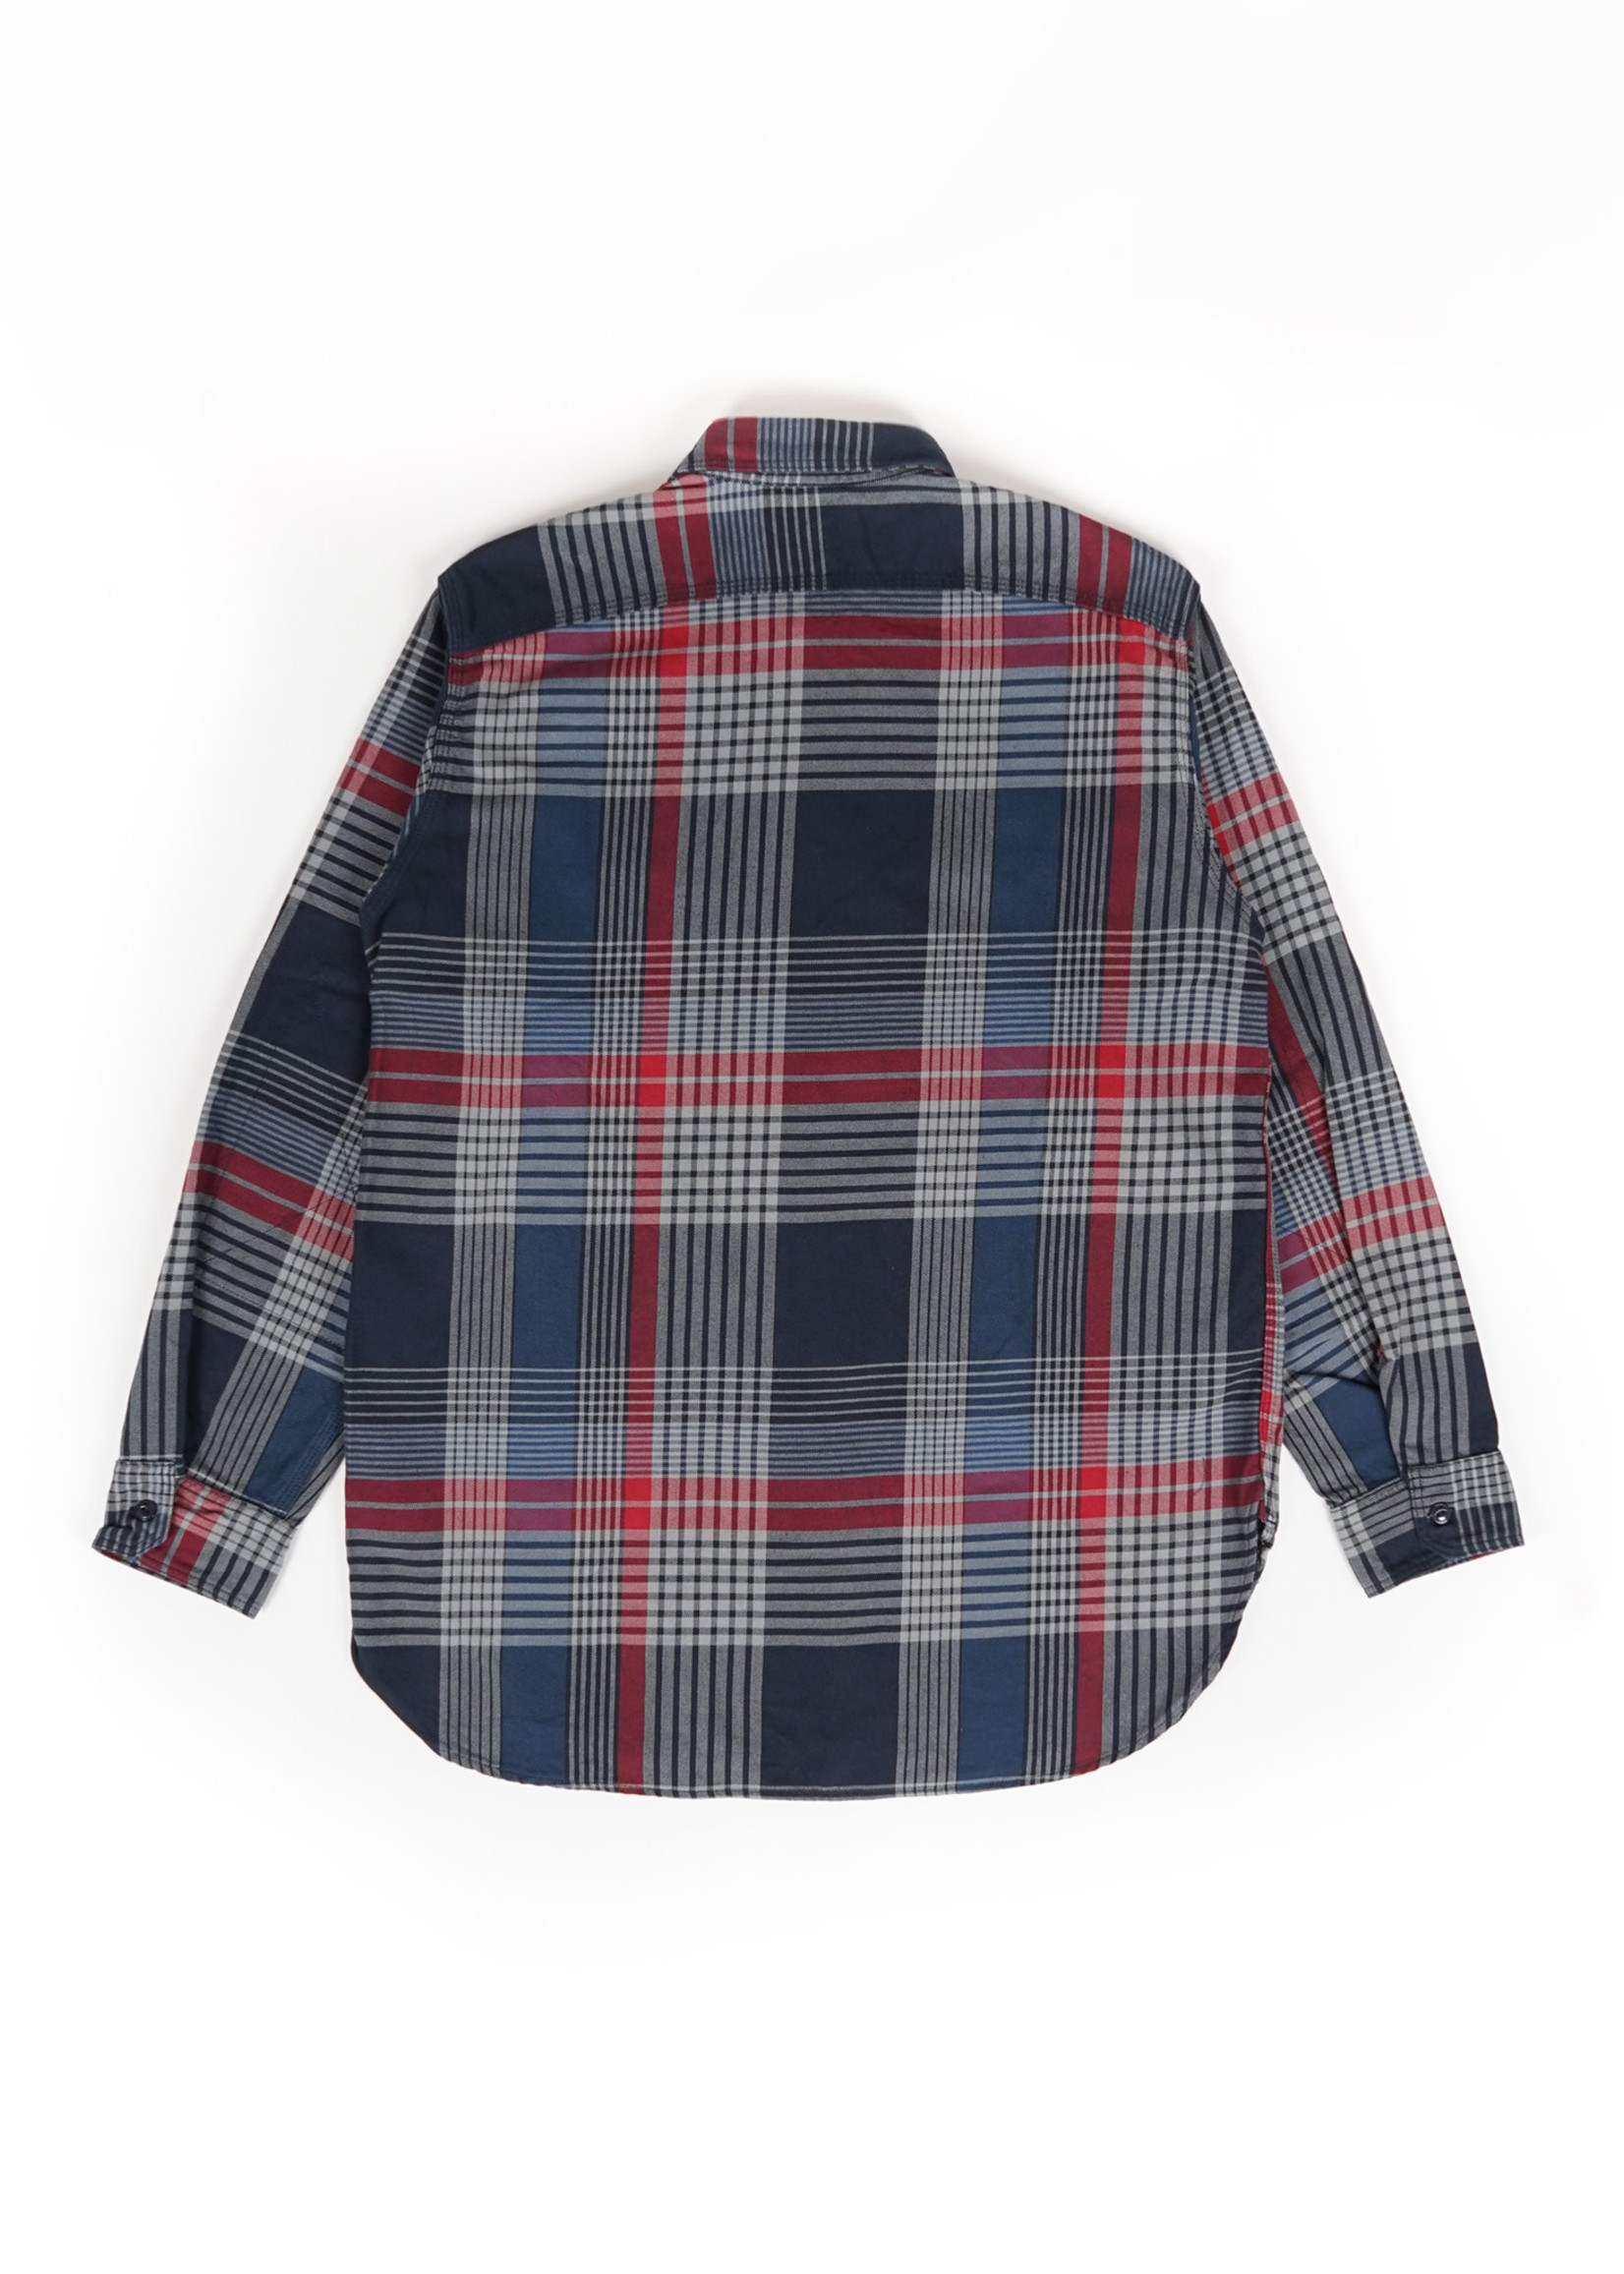 Engineered Garments  Engineered Garments Work Shirt Navy/Grey/Red Cotton Twill